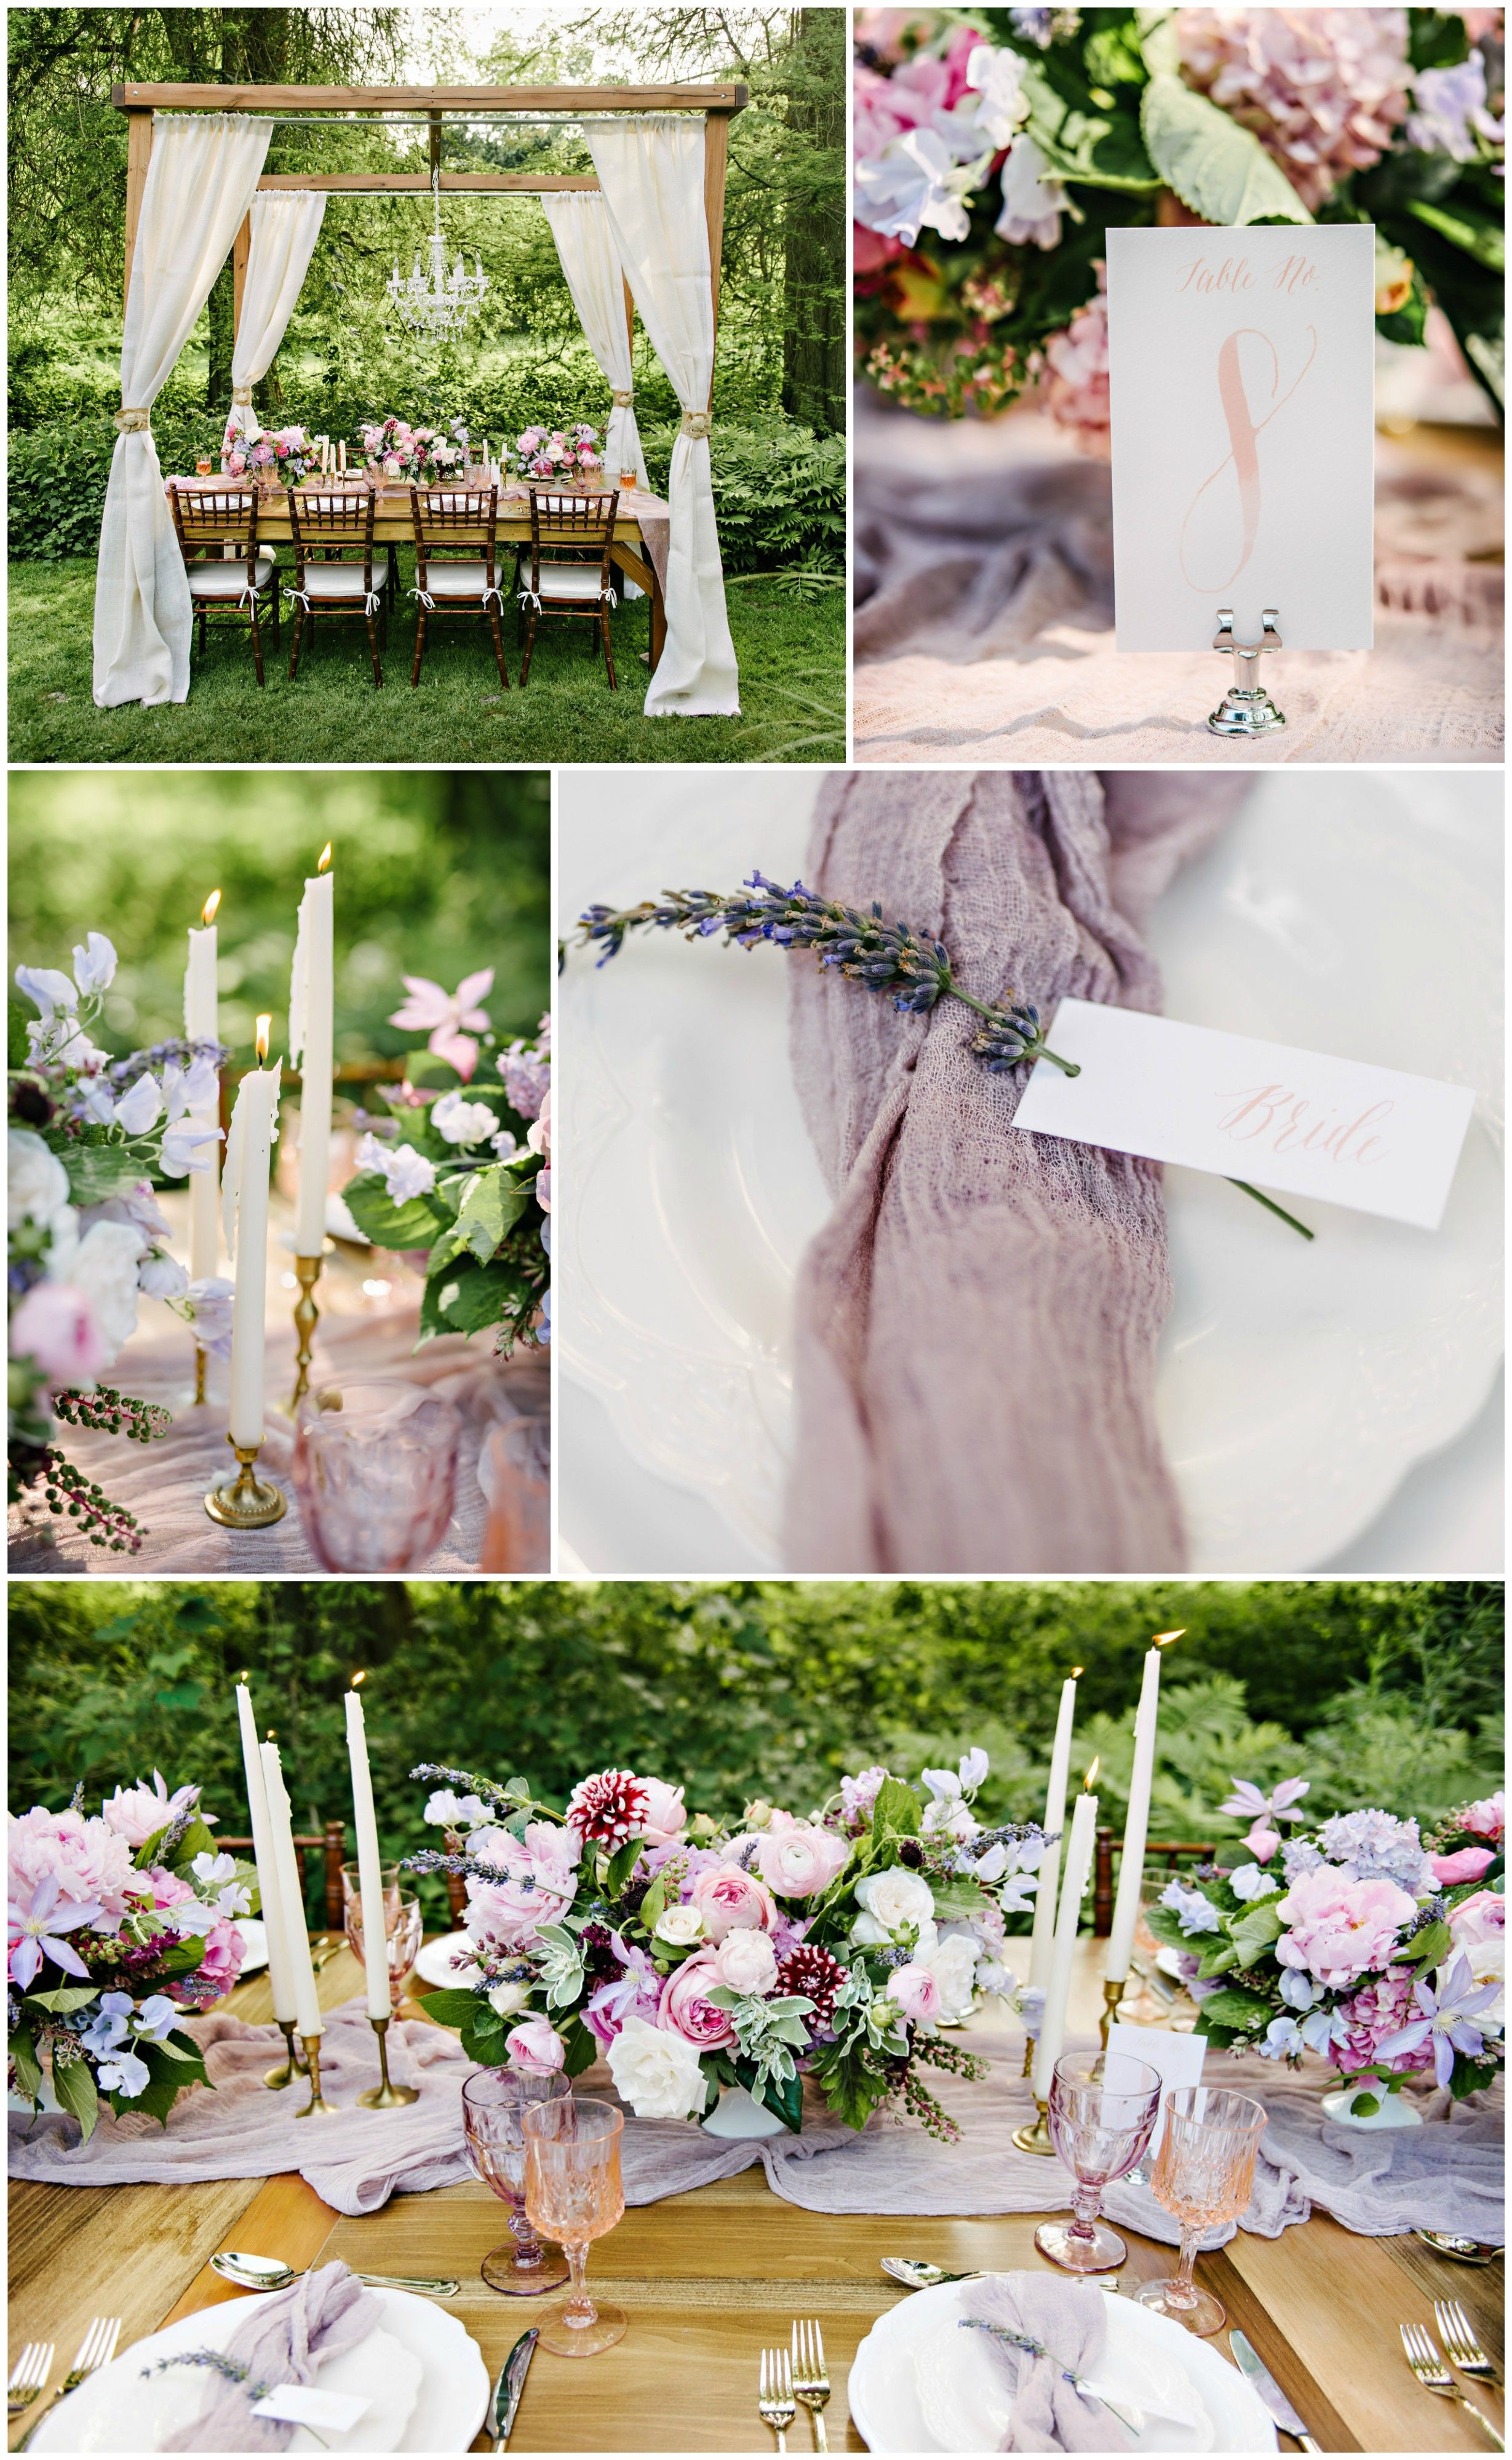 The Smarter Way to Wed | Pink table, Floral centerpieces and Garden ...